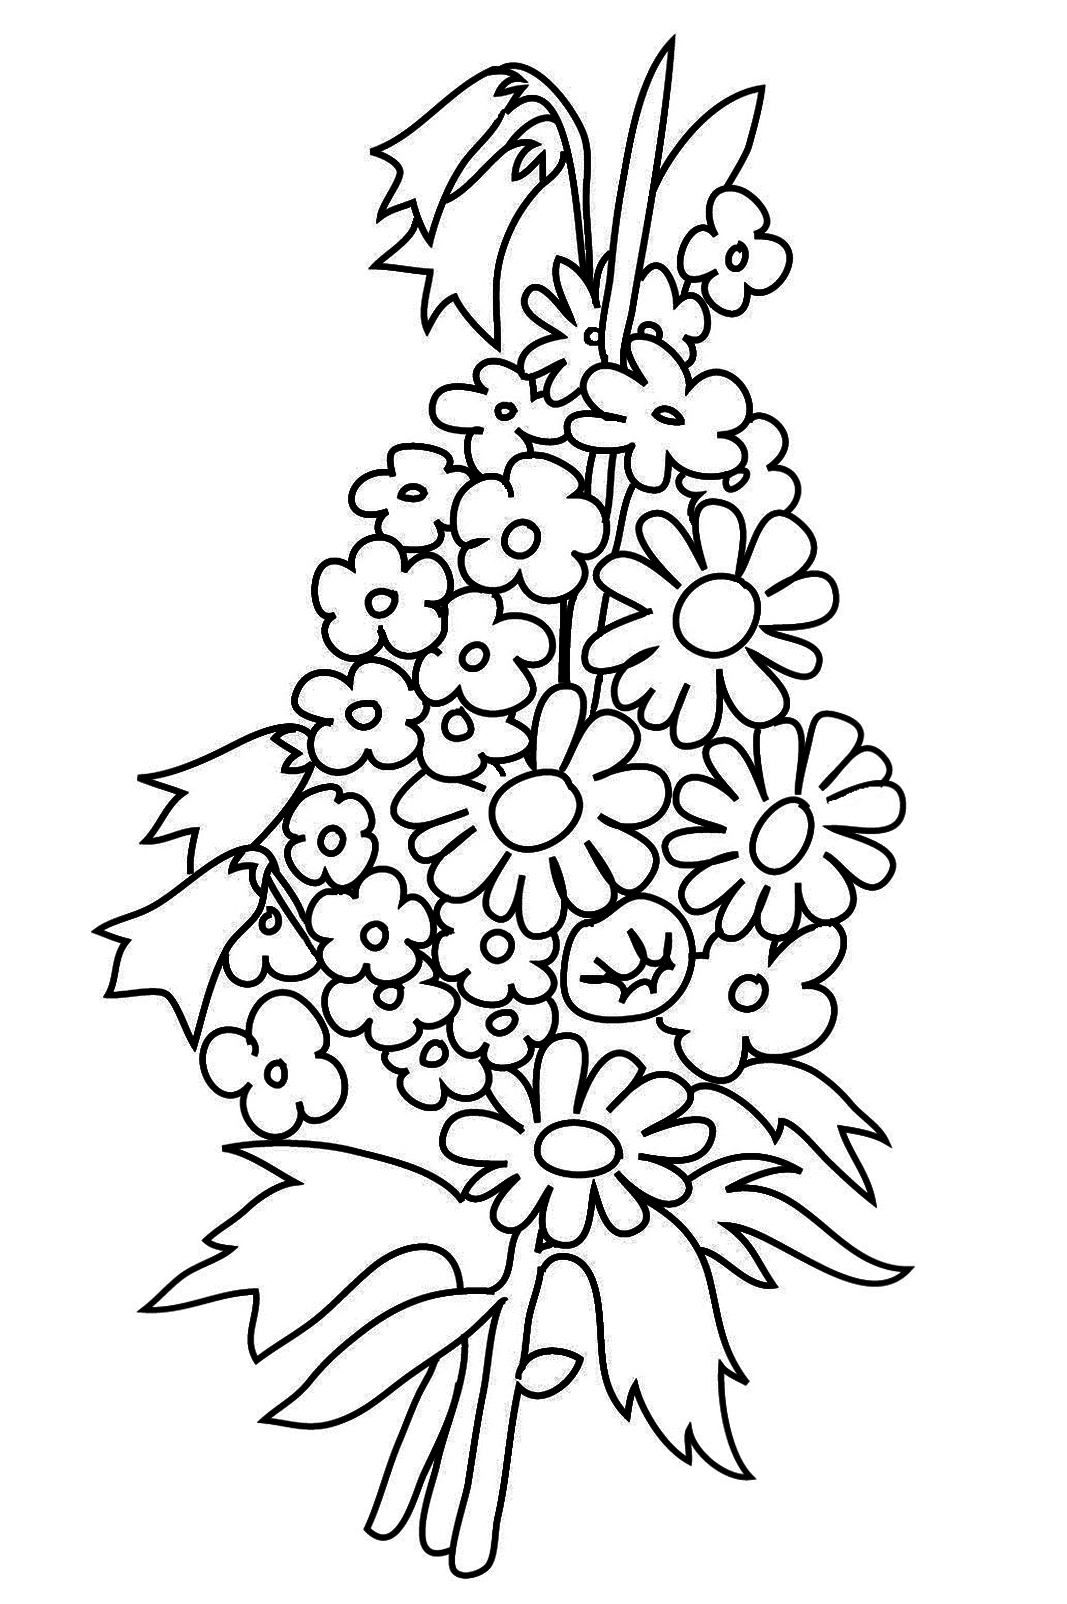 colouring page of flowers detailed flower coloring pages to download and print for free page colouring of flowers